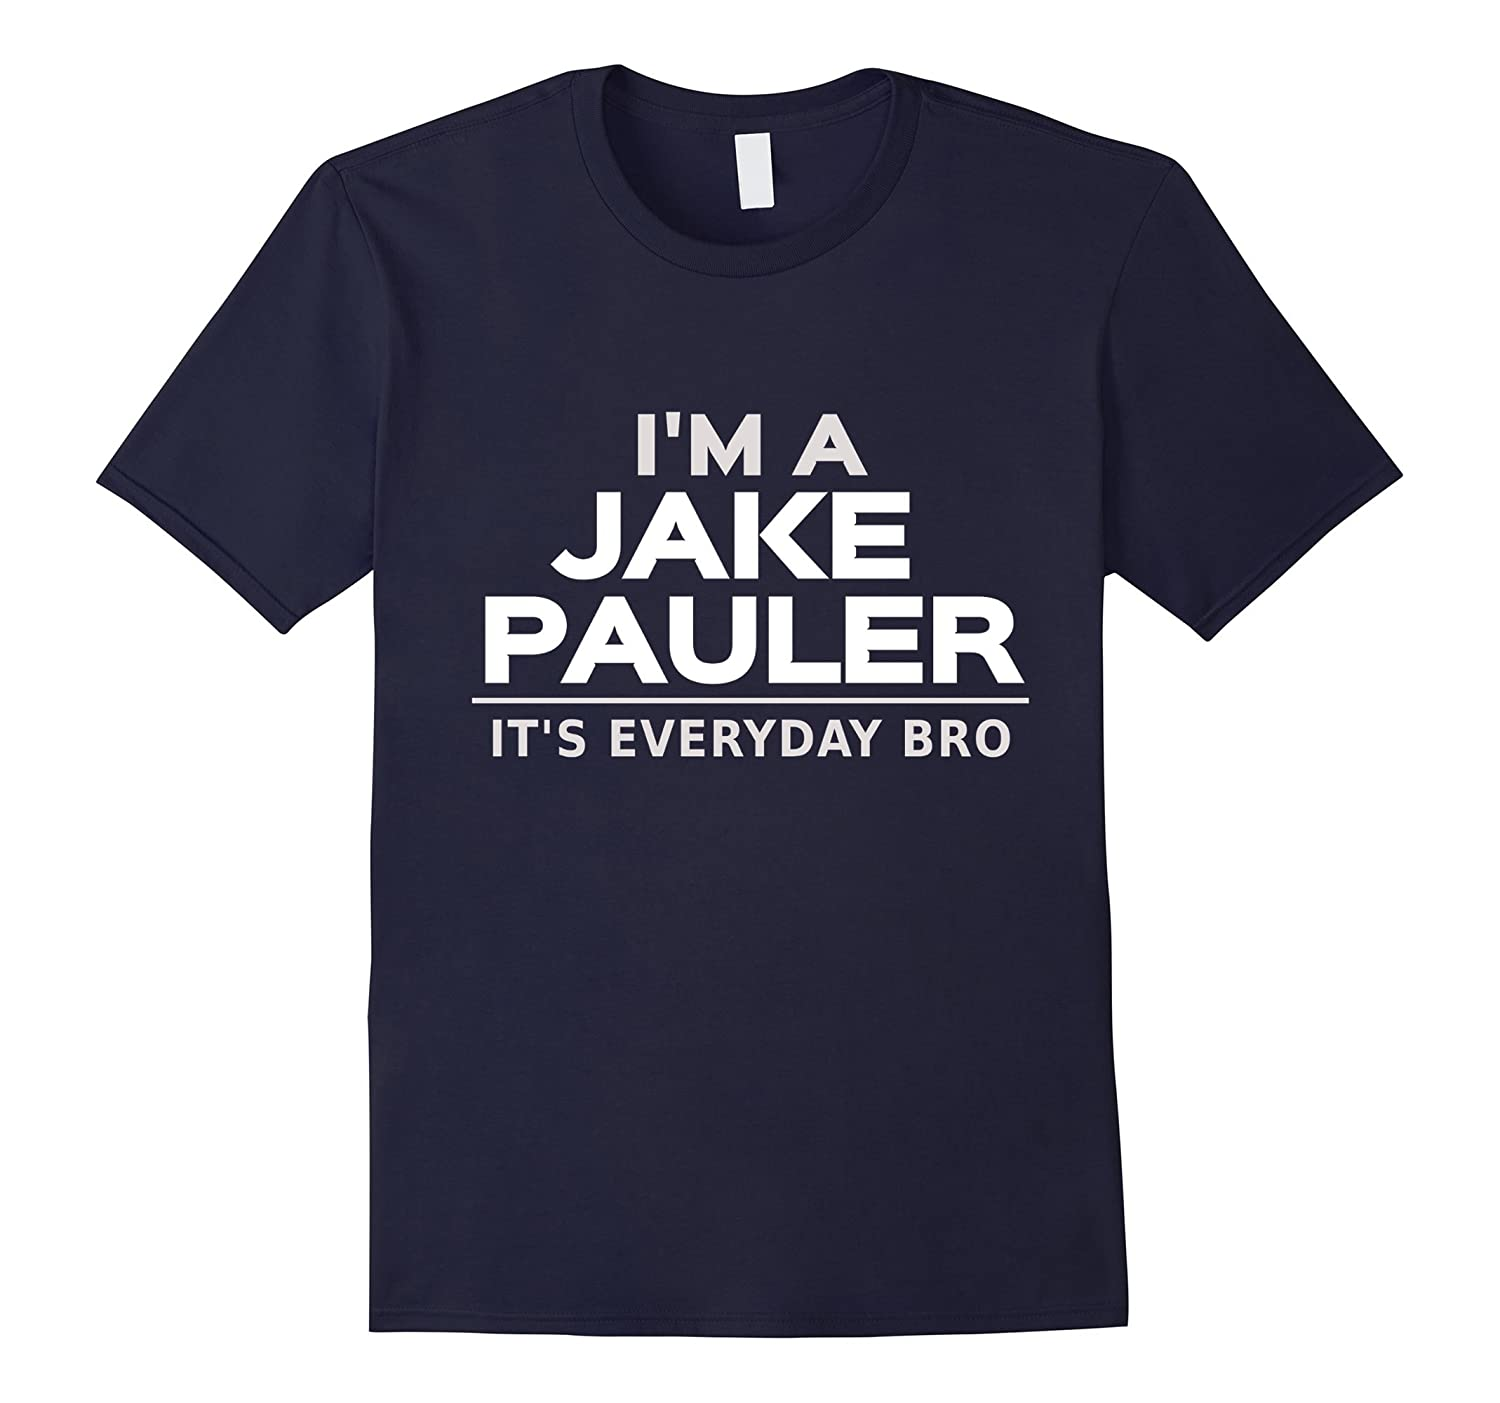 I am a Jake Pauler Shirt It's Everyday Bro LA Paul-FL